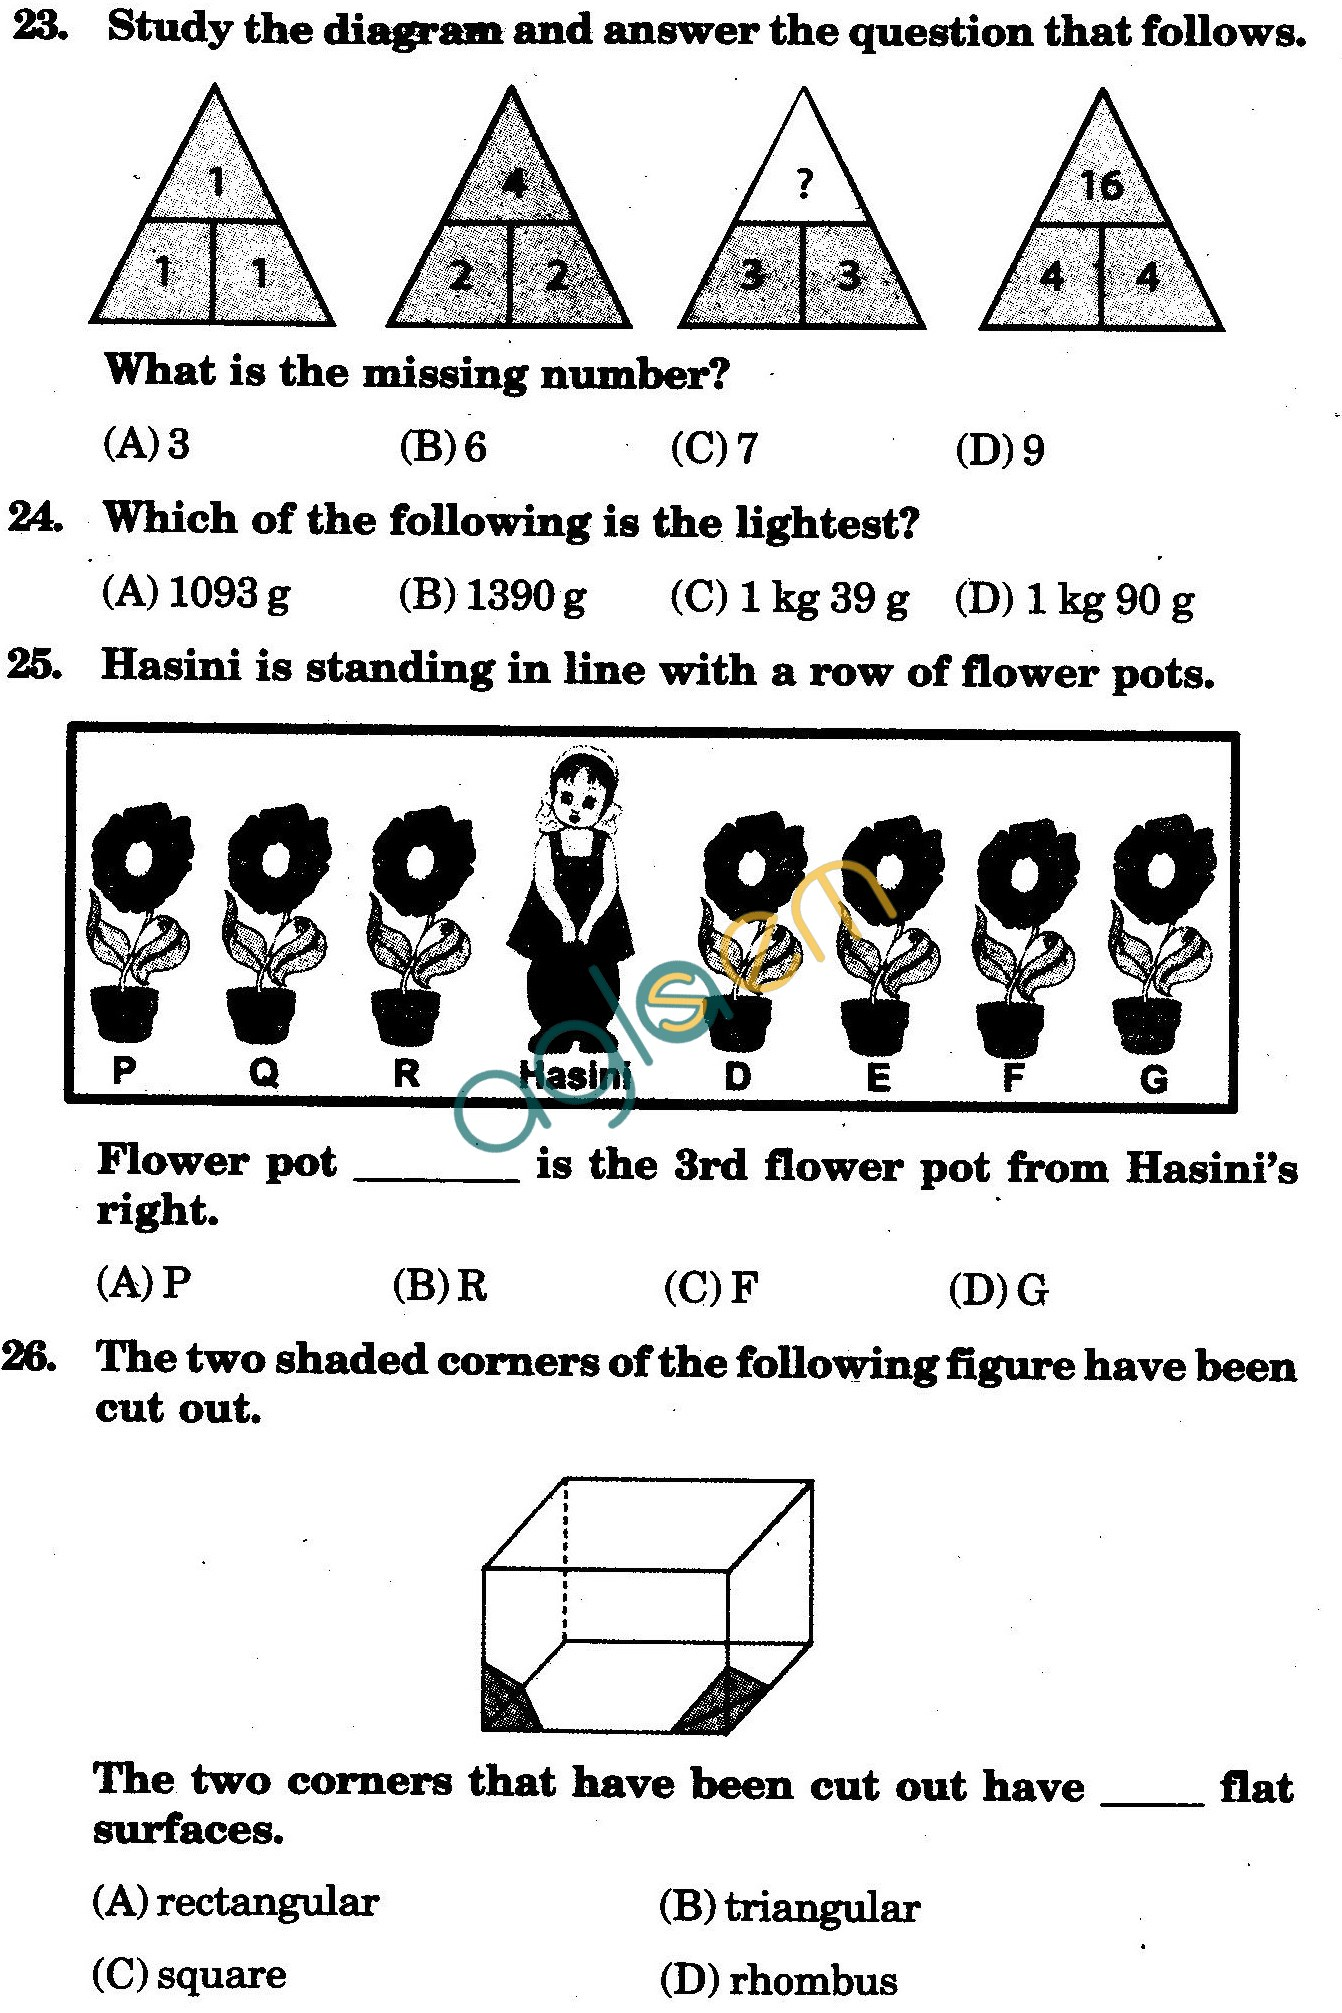 NSTSE 2010 Class III Question Paper with Answers - Mathematics